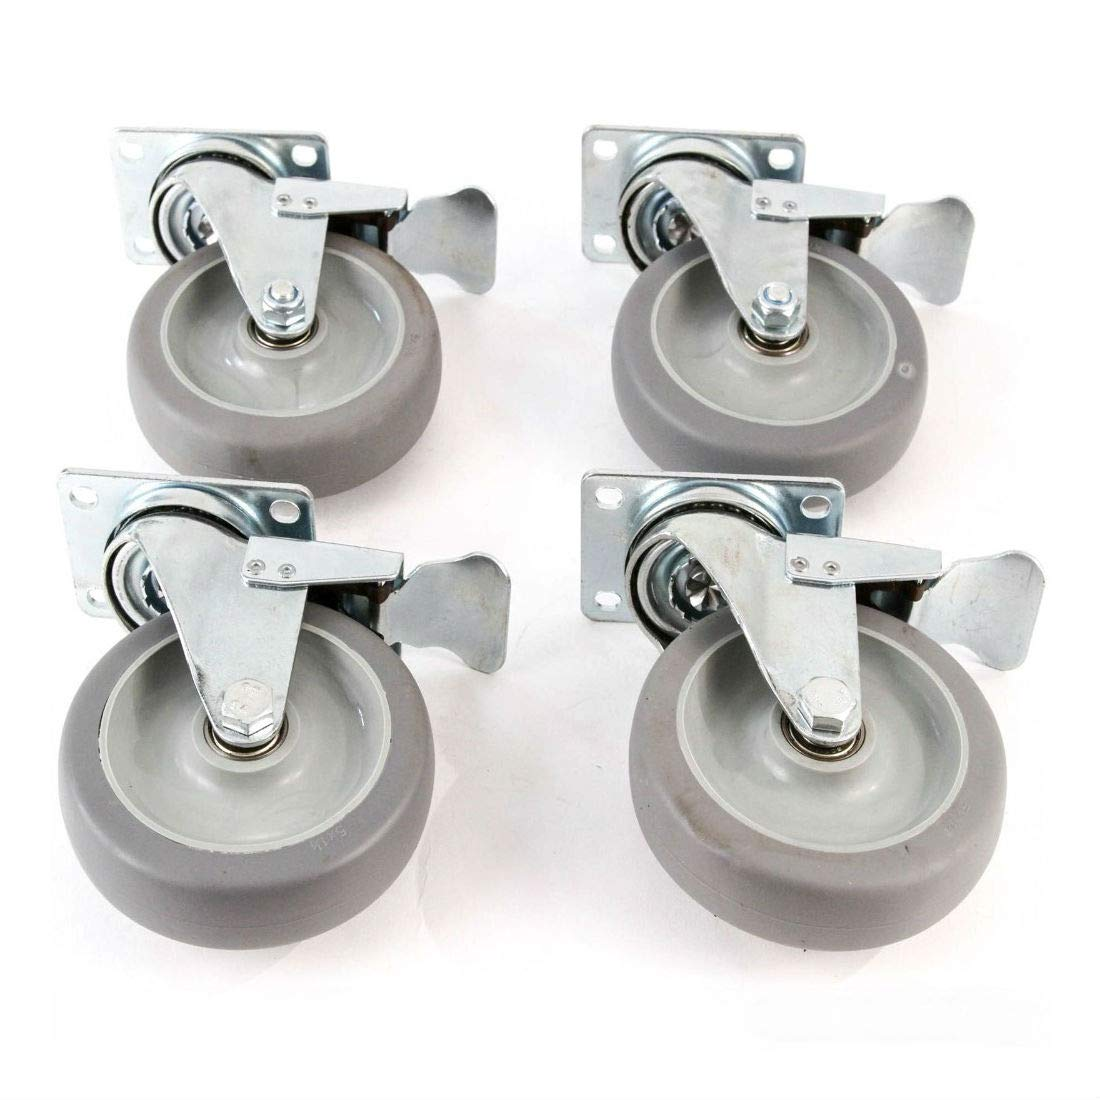 4 Heavy Duty Caster Set 5'' Wheels All Swivel All Brake Casters Non Skid No Mark